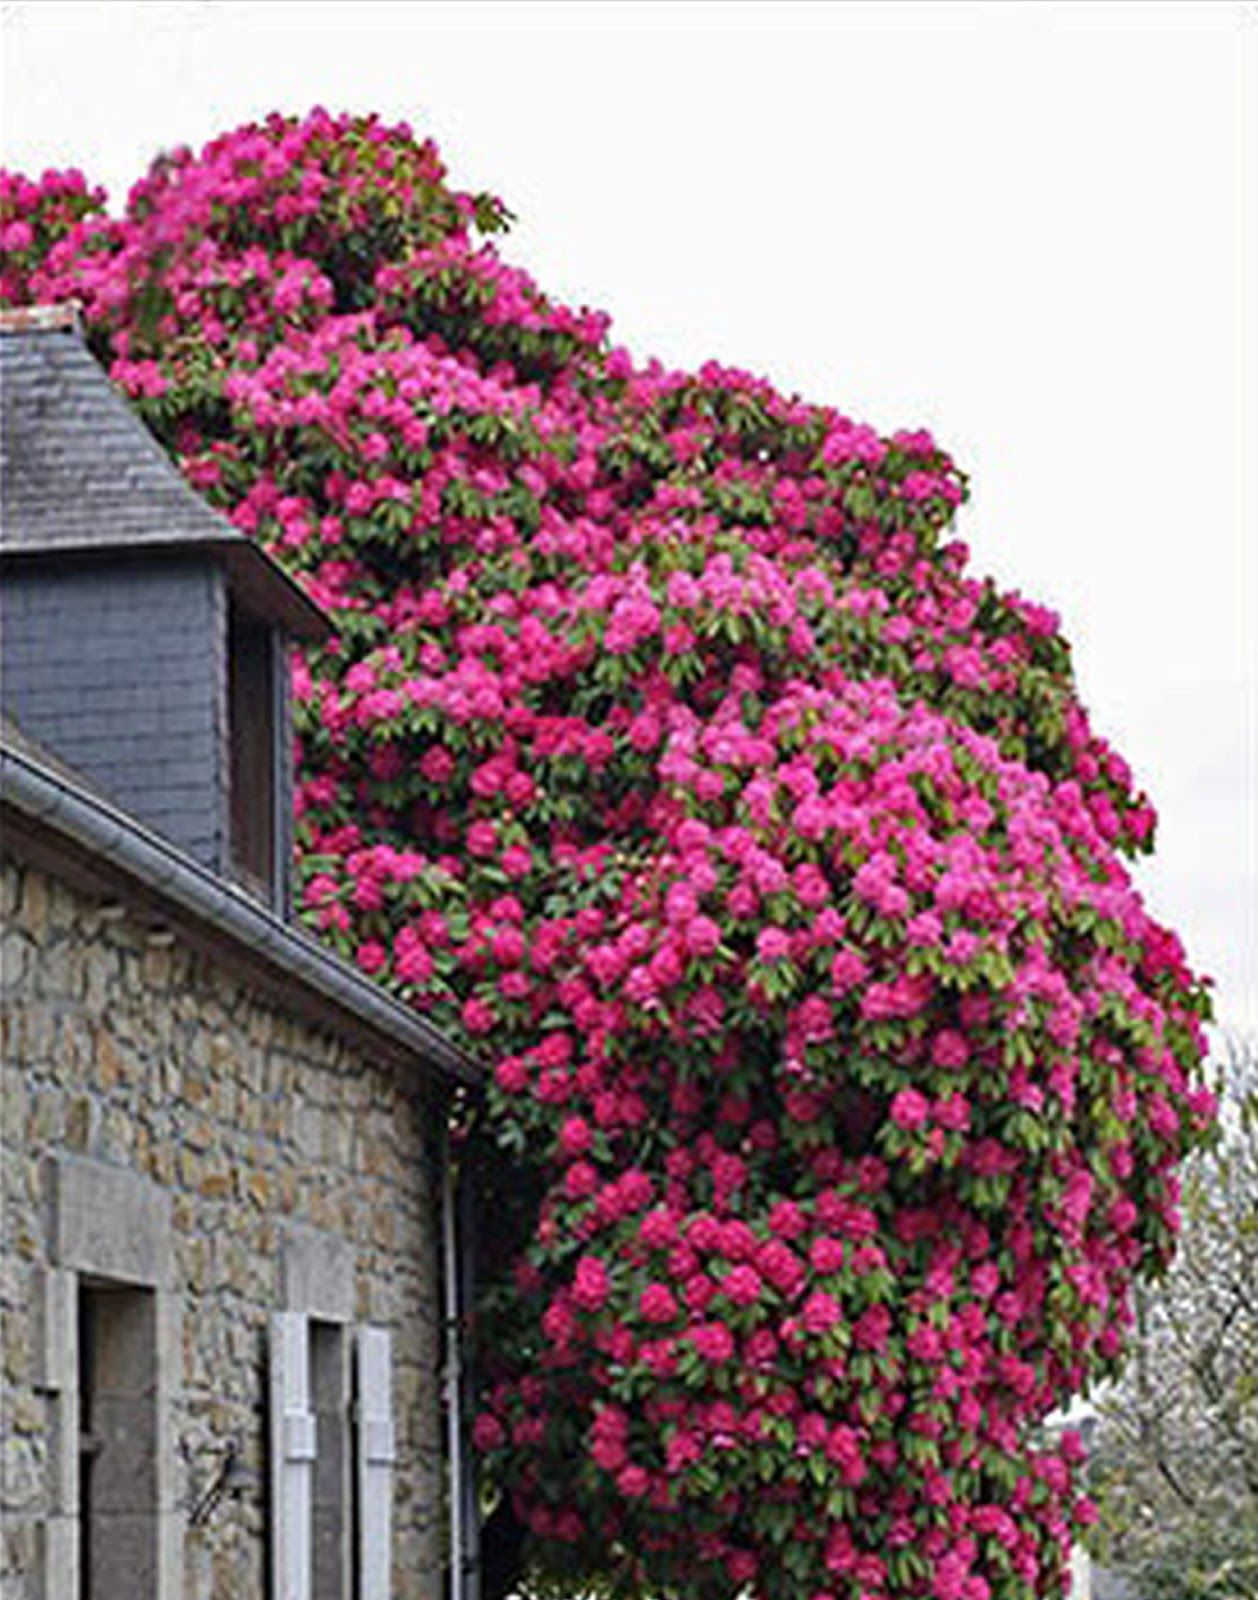 stone cottage + fuchsia / pink rhododendron #flowers #tree